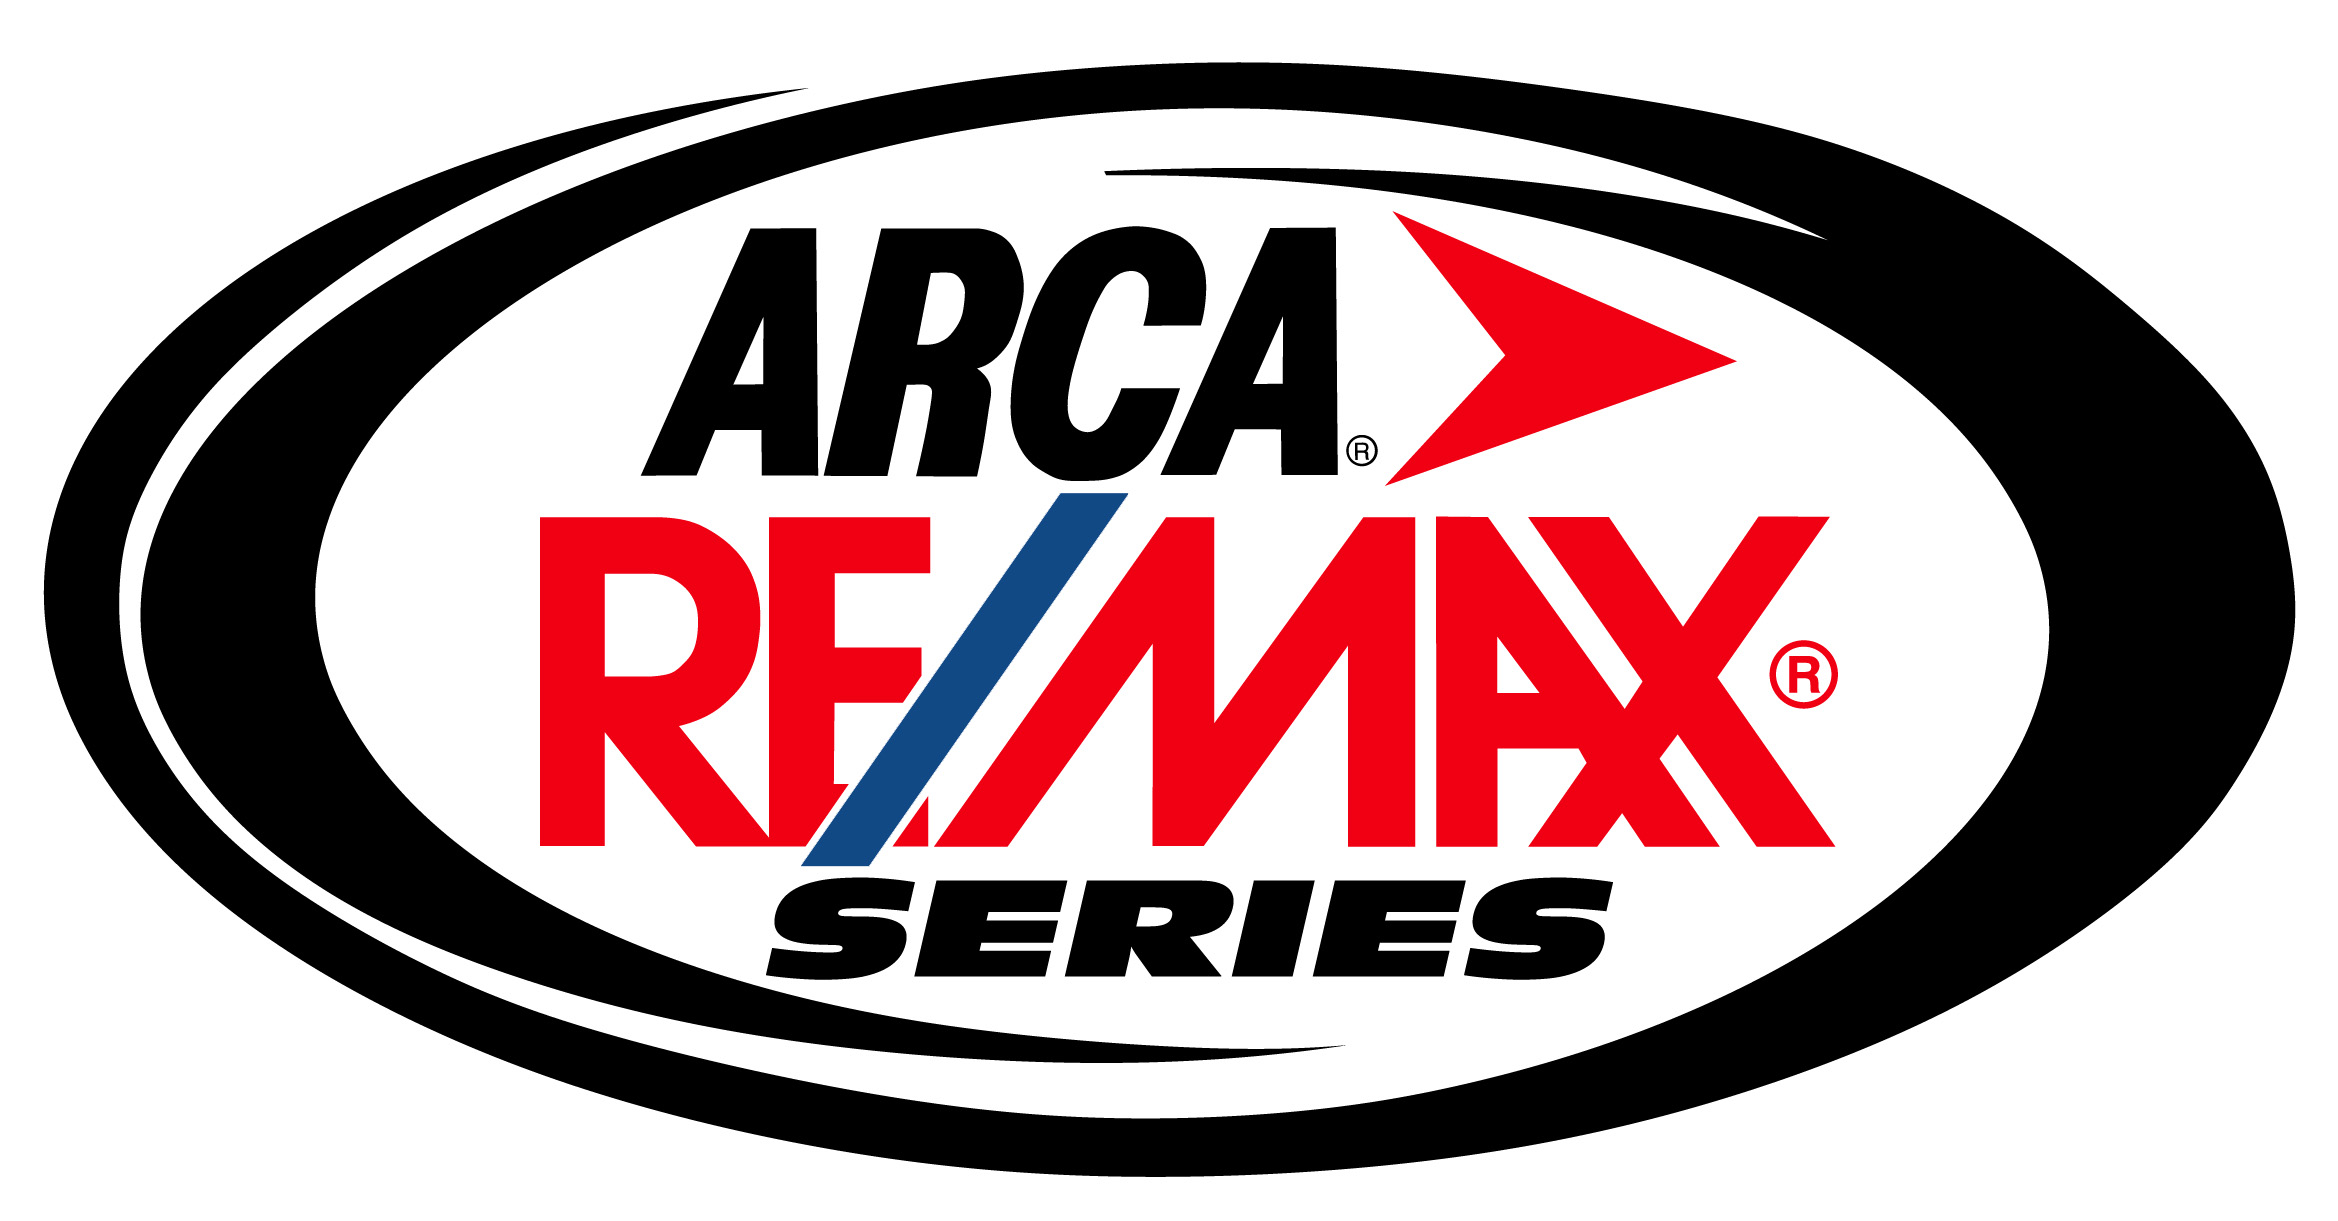 Arca talladega stott classic racing offers formal apology after arca re max 250